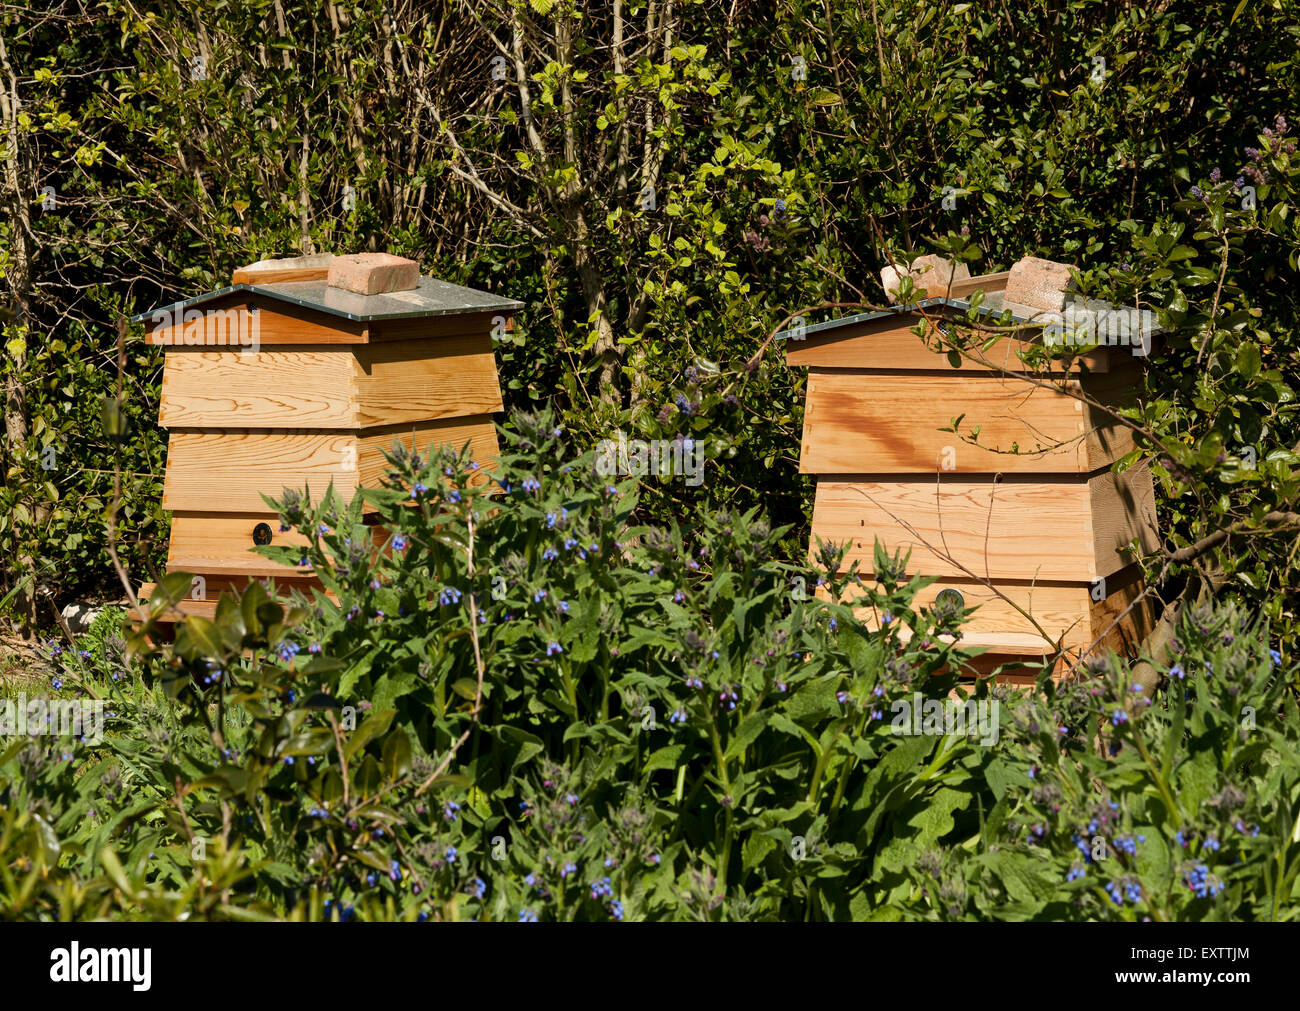 Two bee hives in a garden in spring - Stock Image